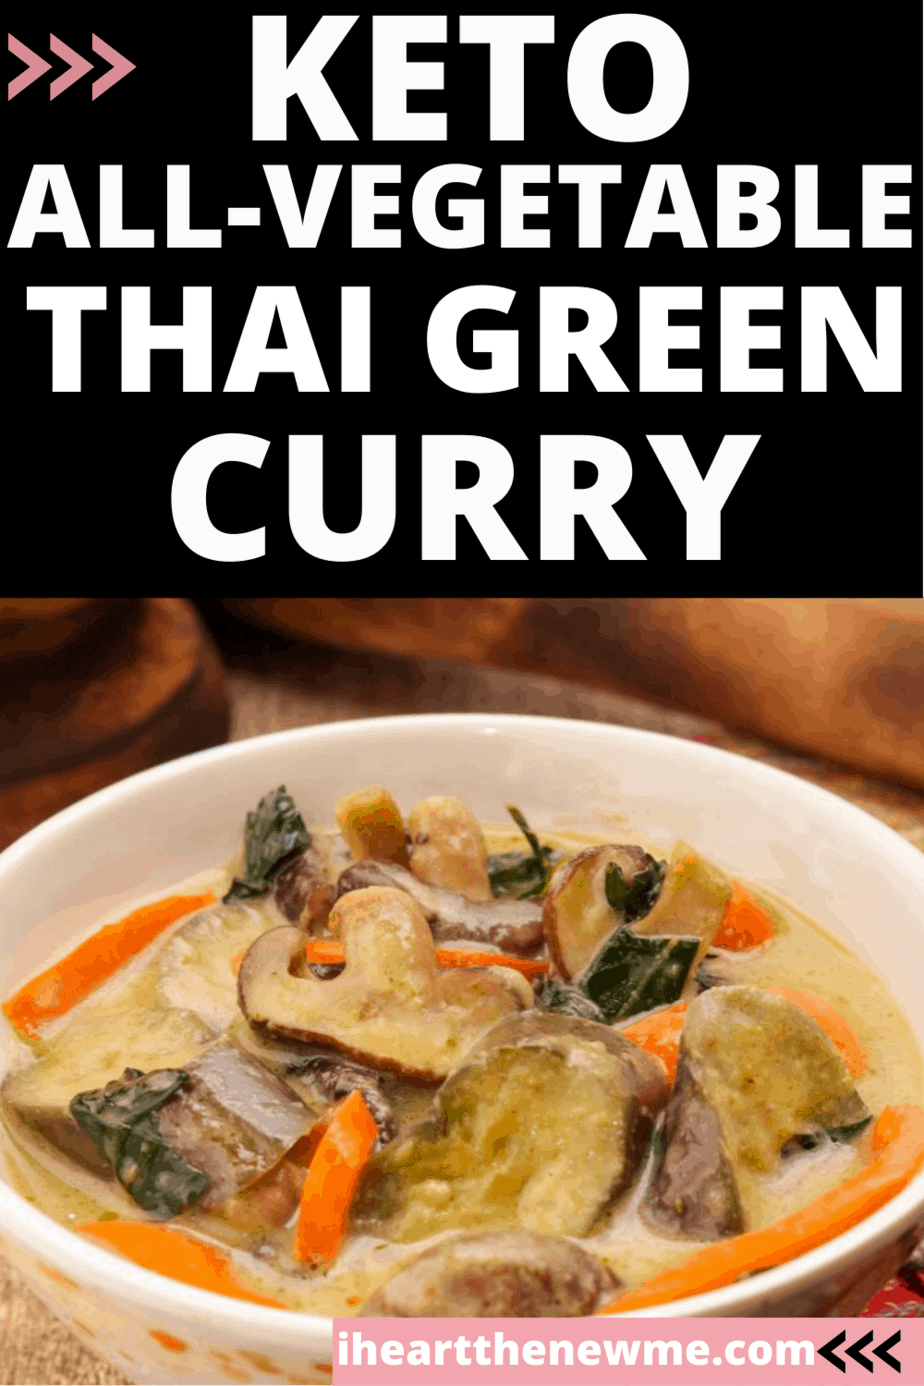 Keto All-Vegetable Thai Green Curry Recipe